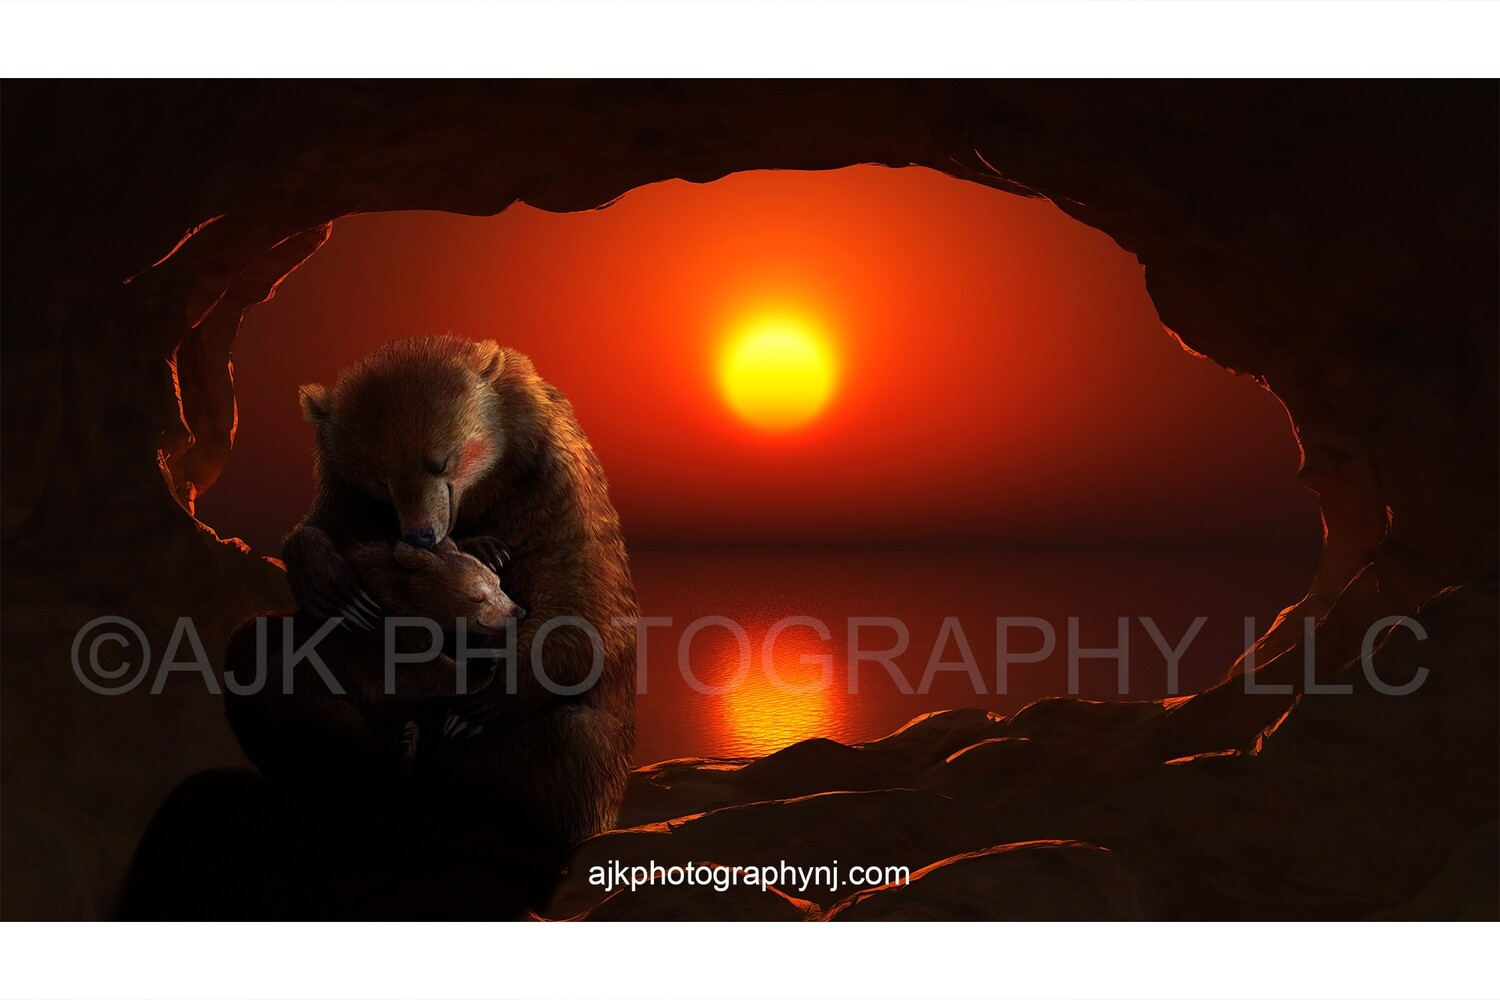 Bear digital background, mother bear hugging baby cub in cave at sunset, digital background